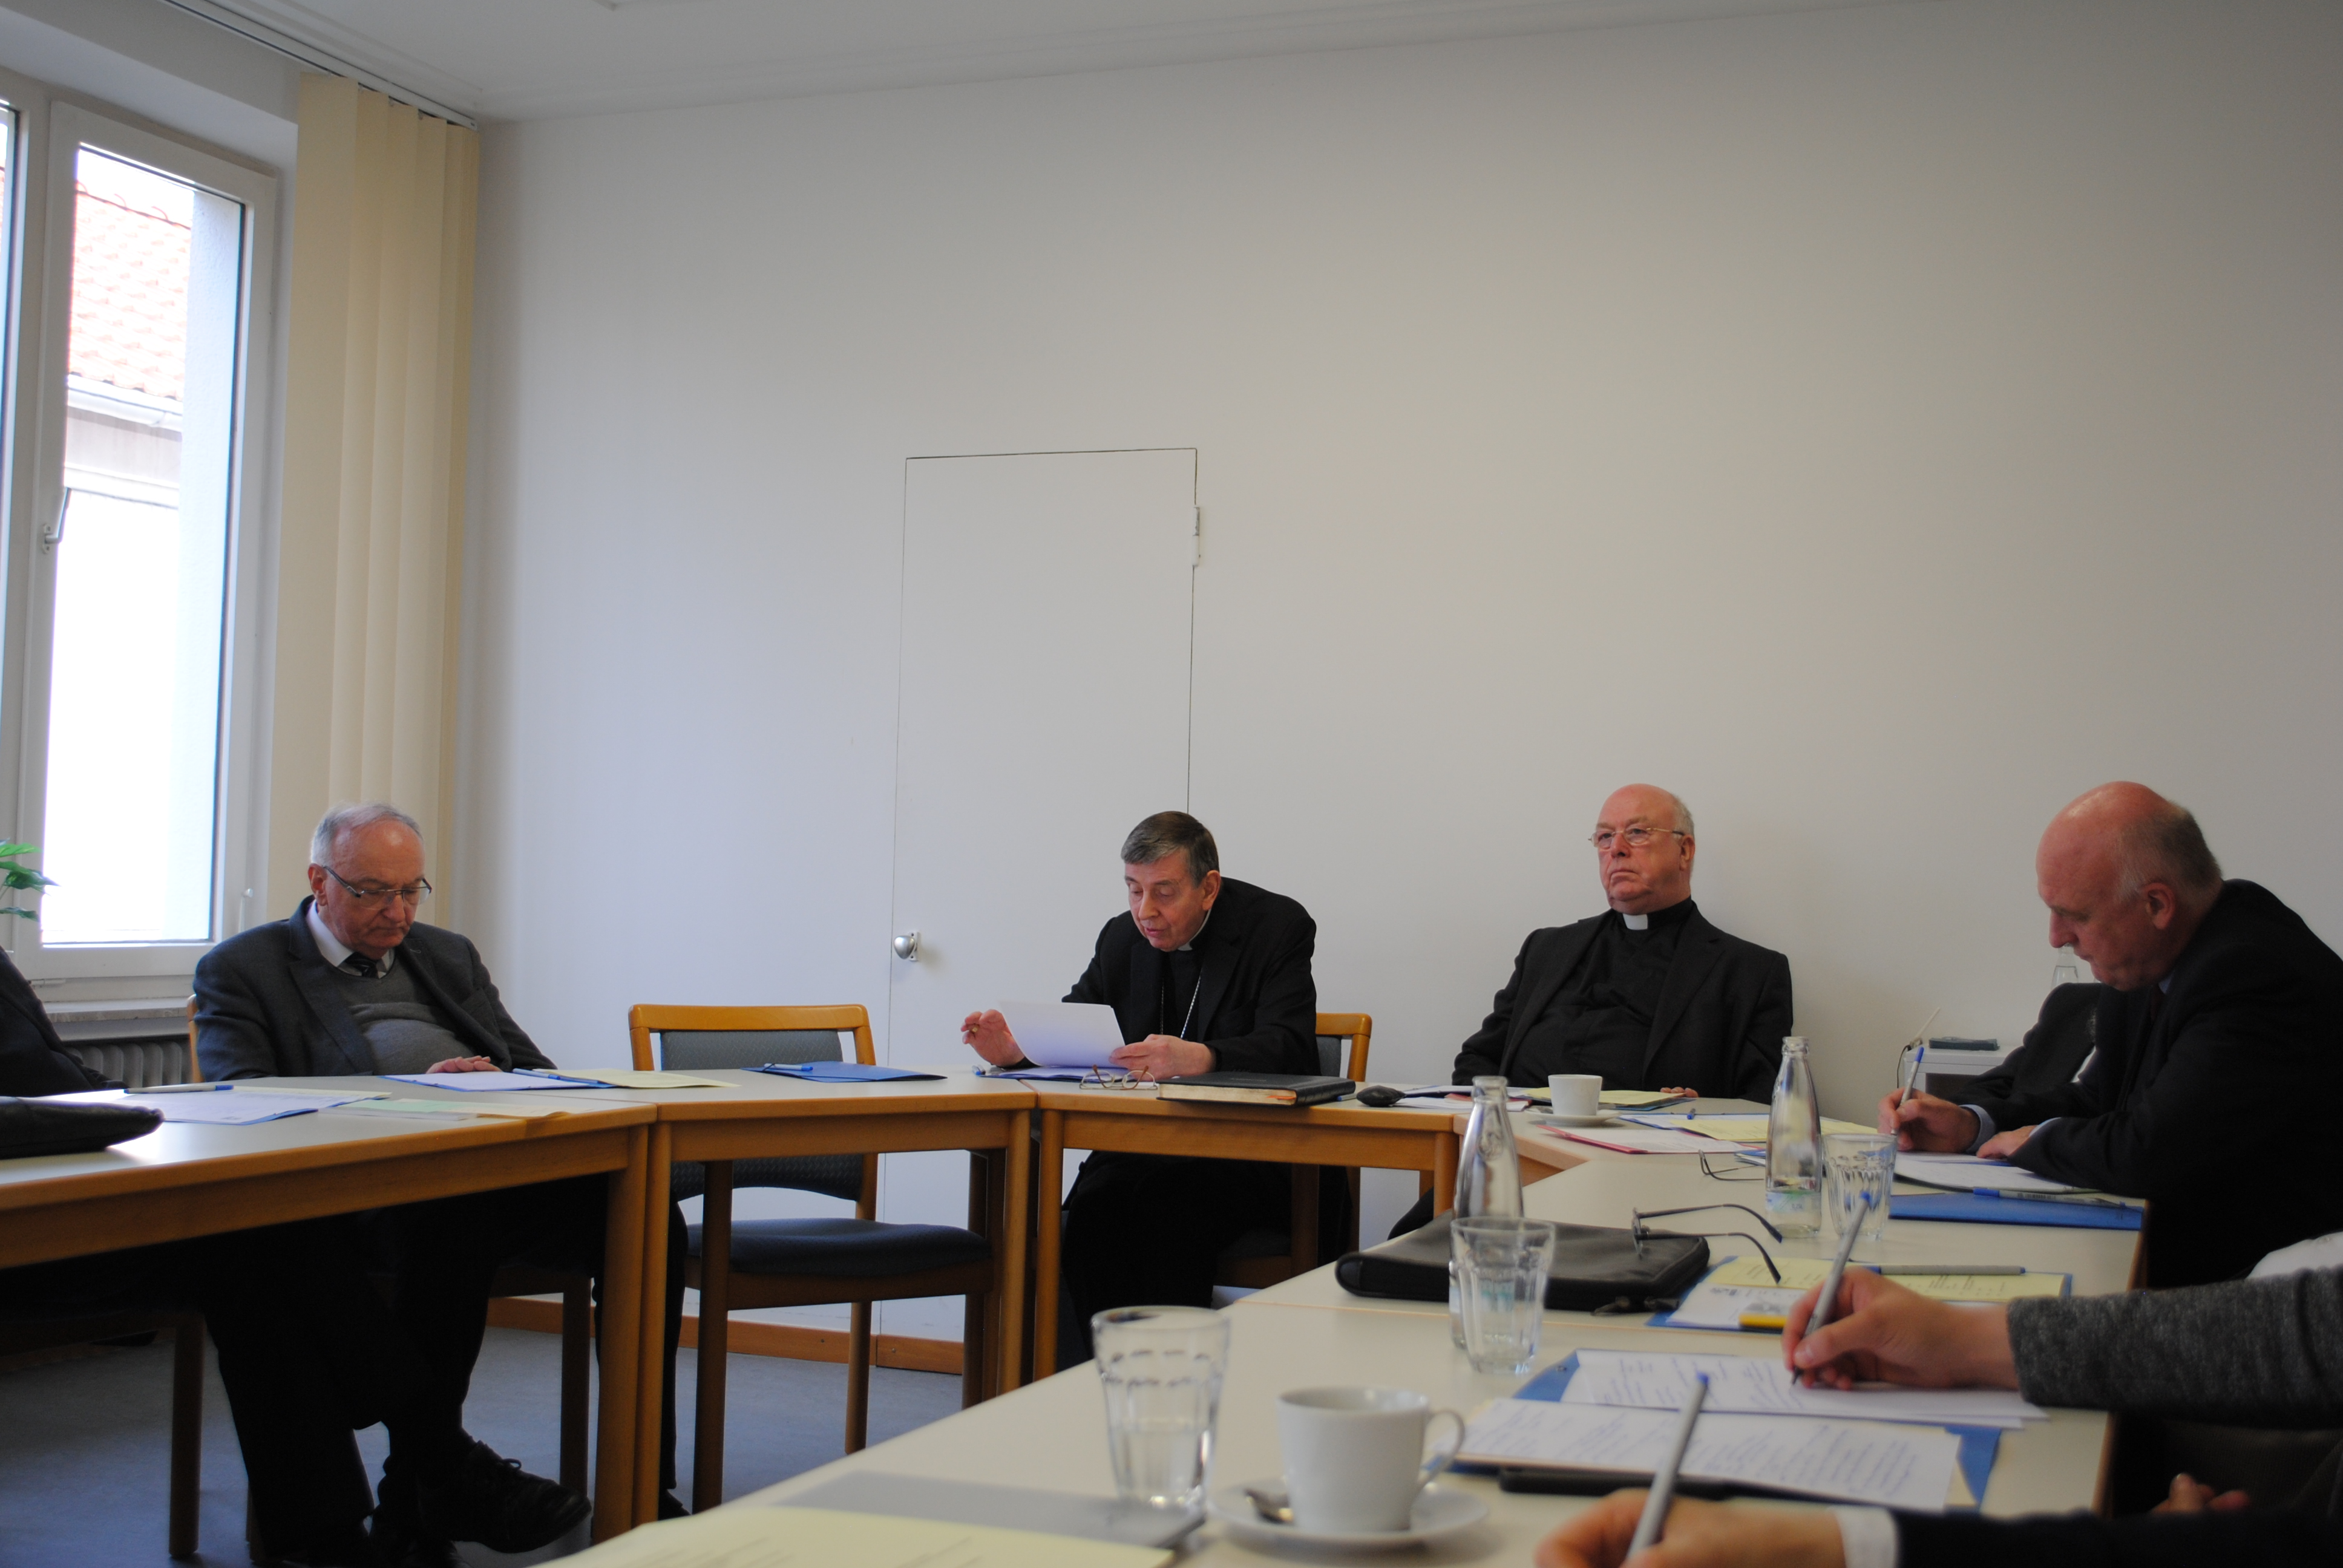 Kurt Cardinal Koch informs the committee about the current work of the Pontifical Council for Promoting Christian Unity